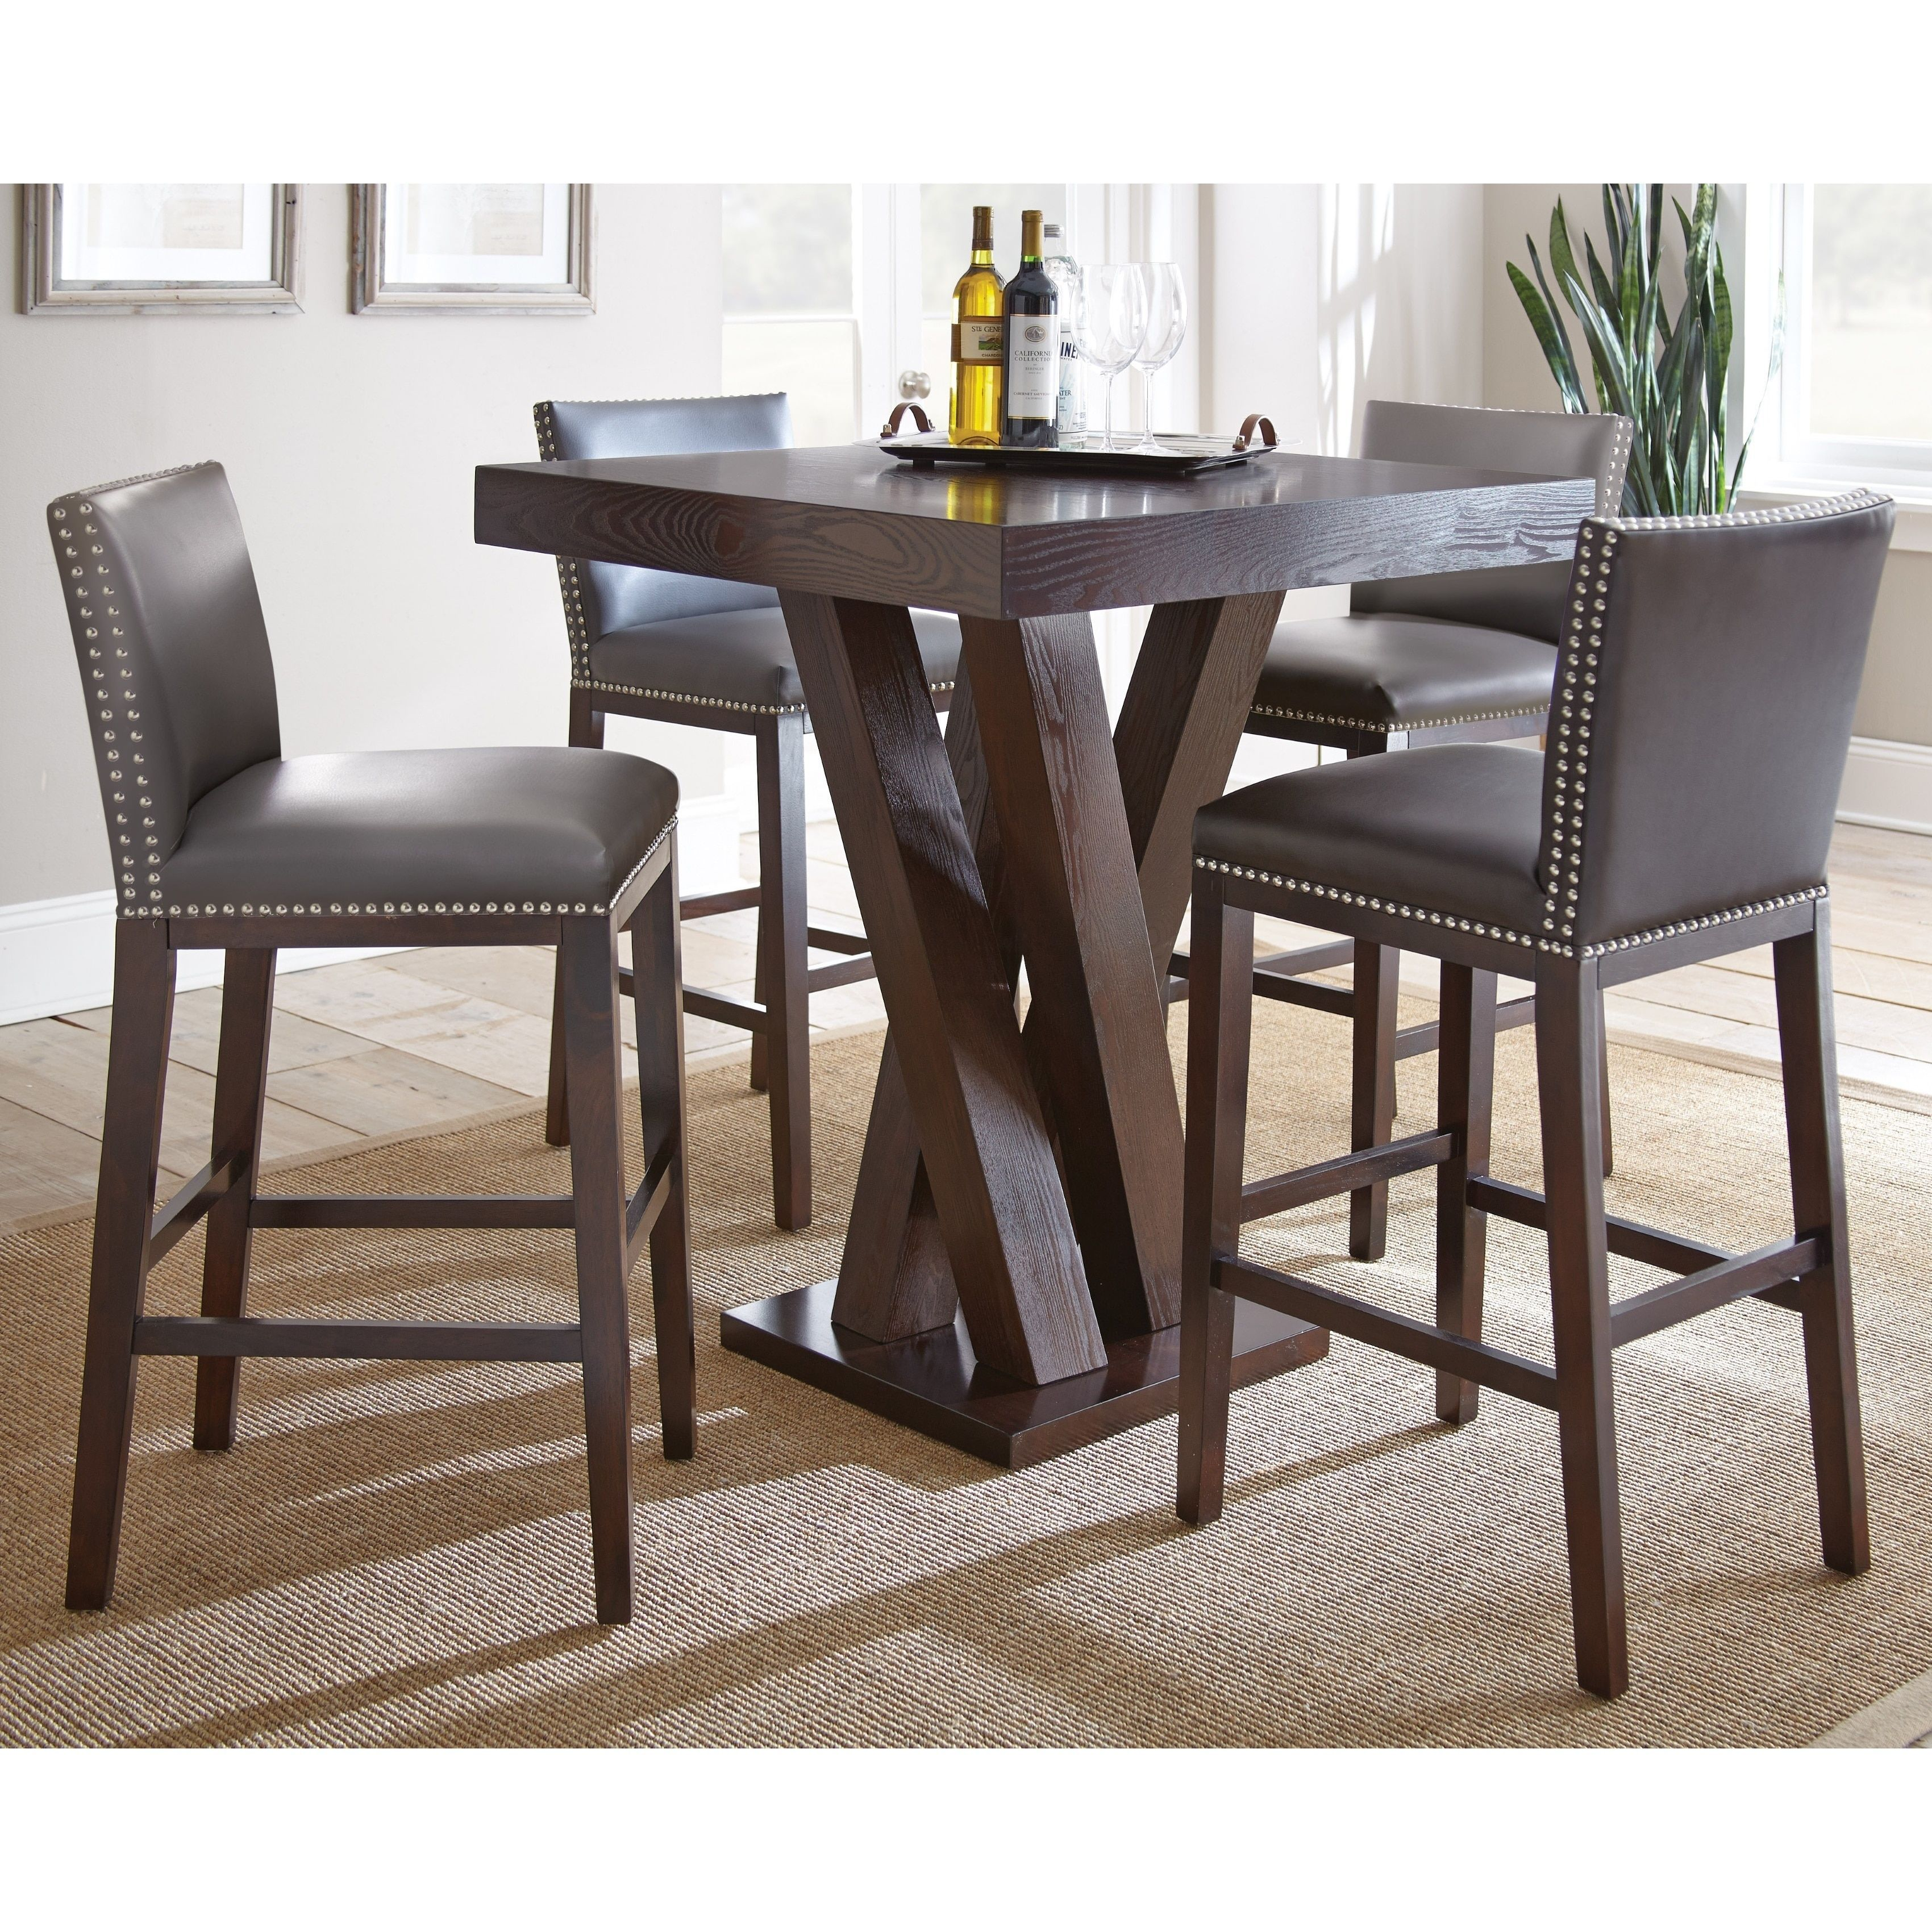 Greyson Living Tisbury 5 Piece Bar Table Set (Tisbury 5PC